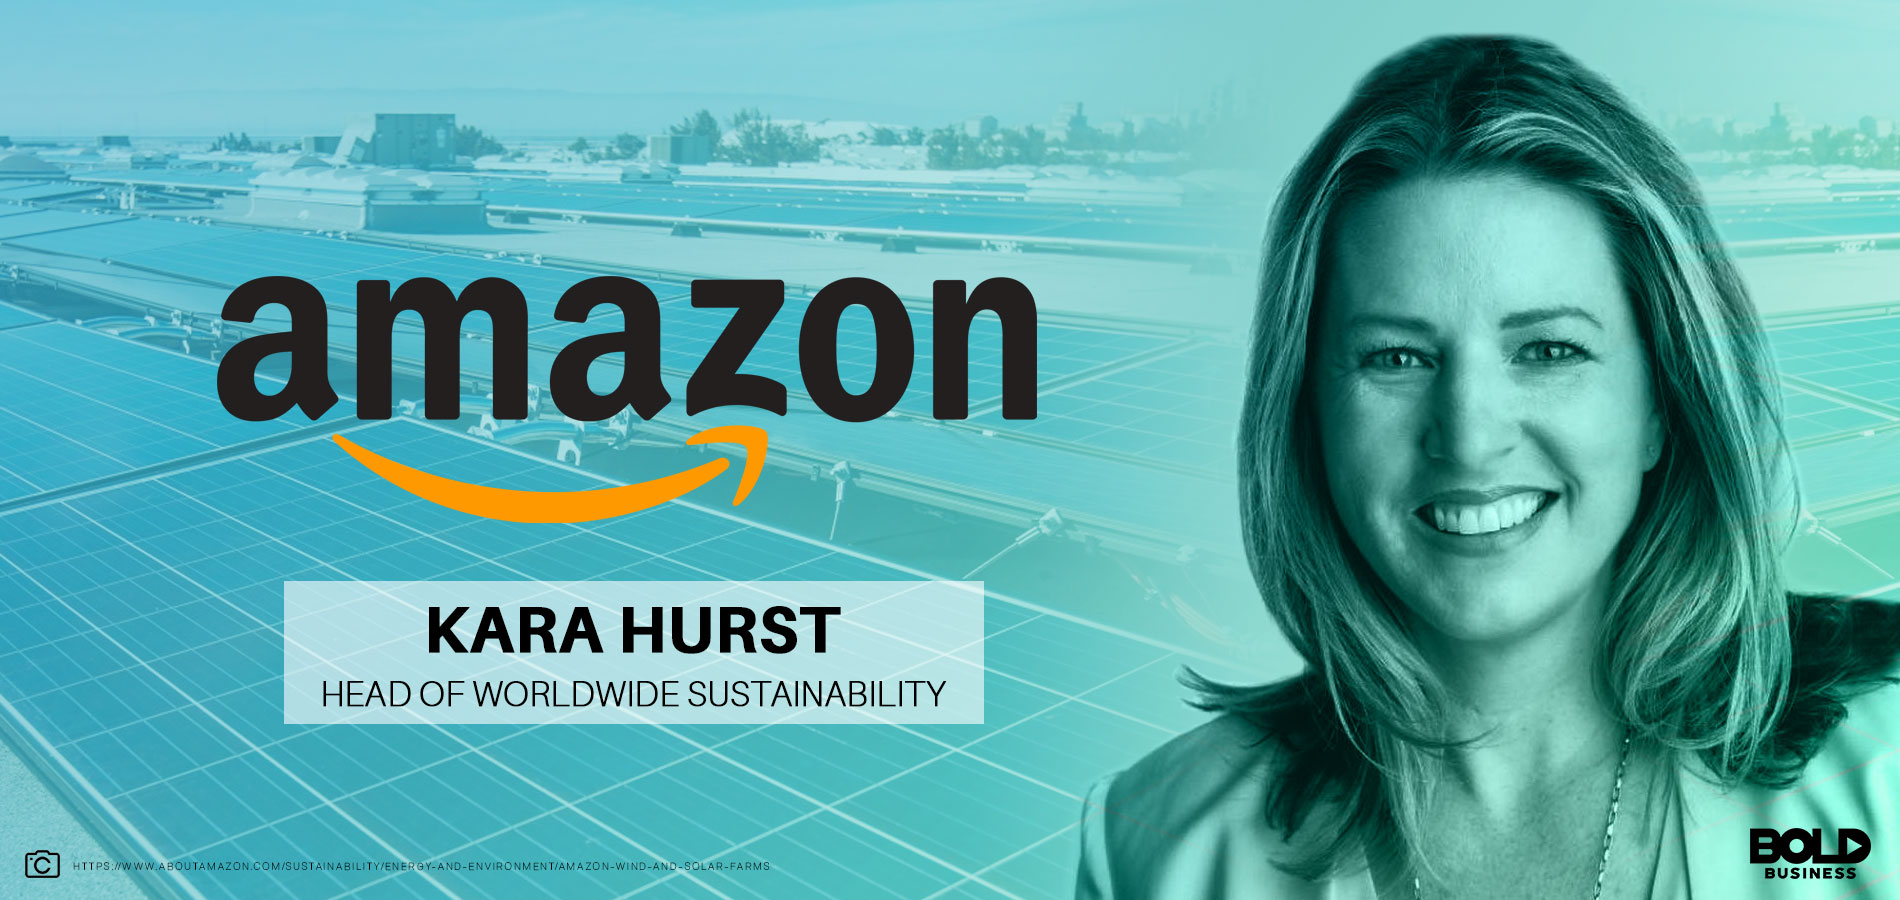 Kara Hurst - Head of Amazon's Worldwide Sustainability